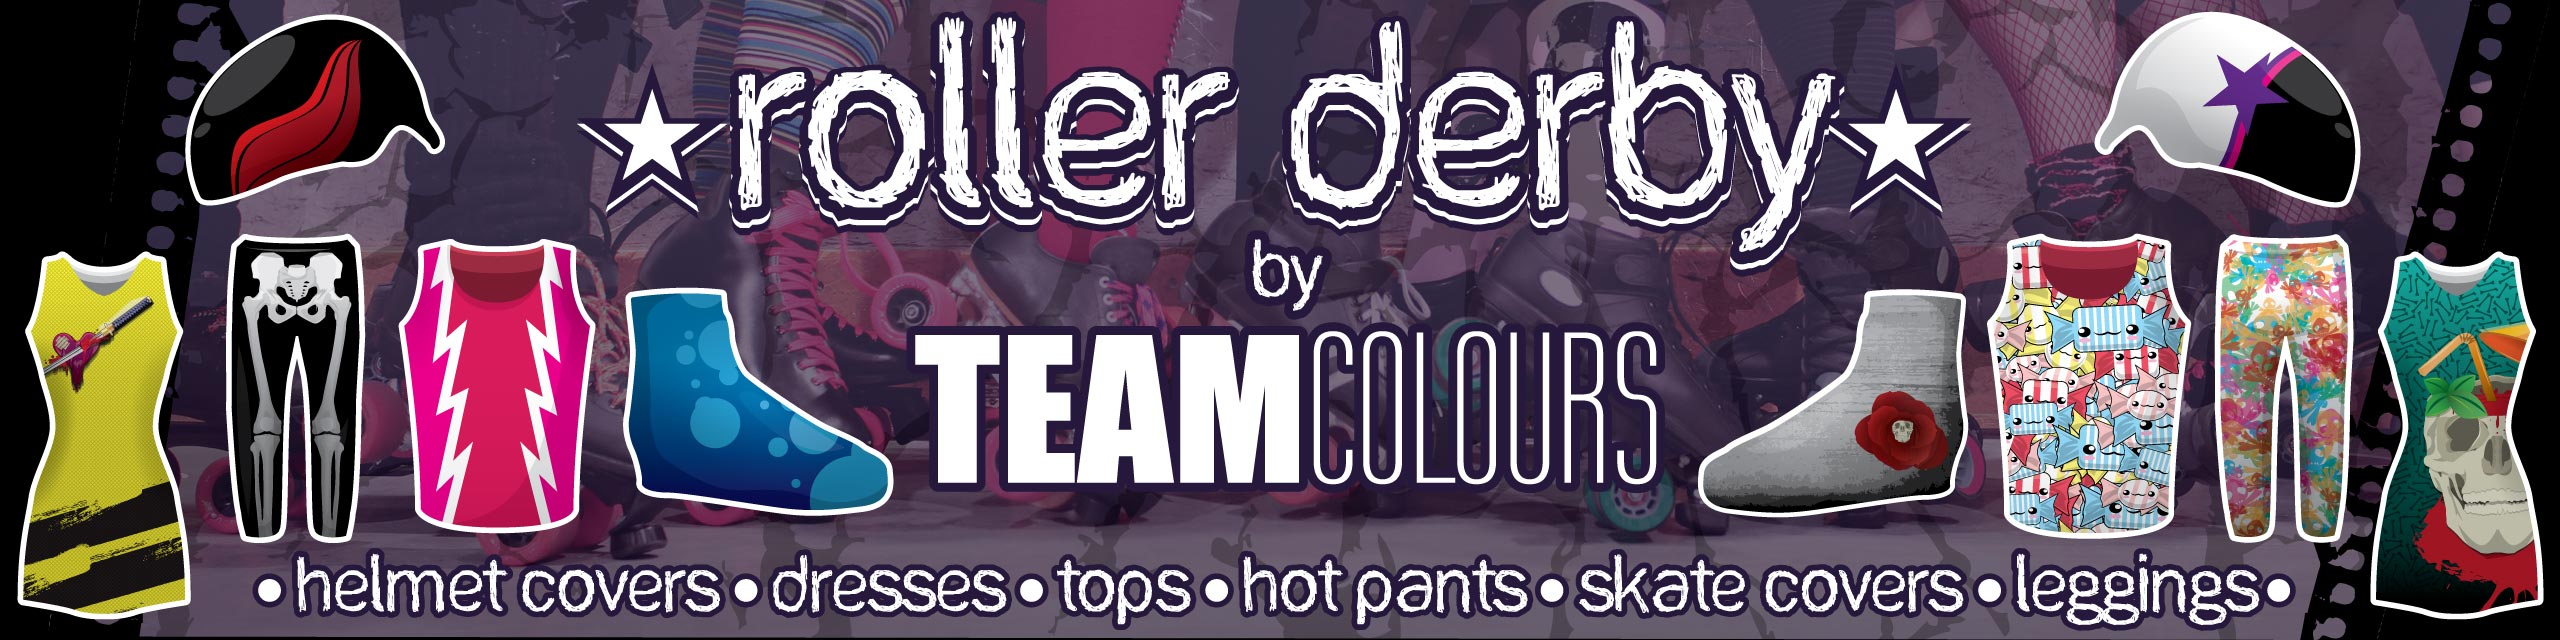 Design you own roller derby kits at Team Colours